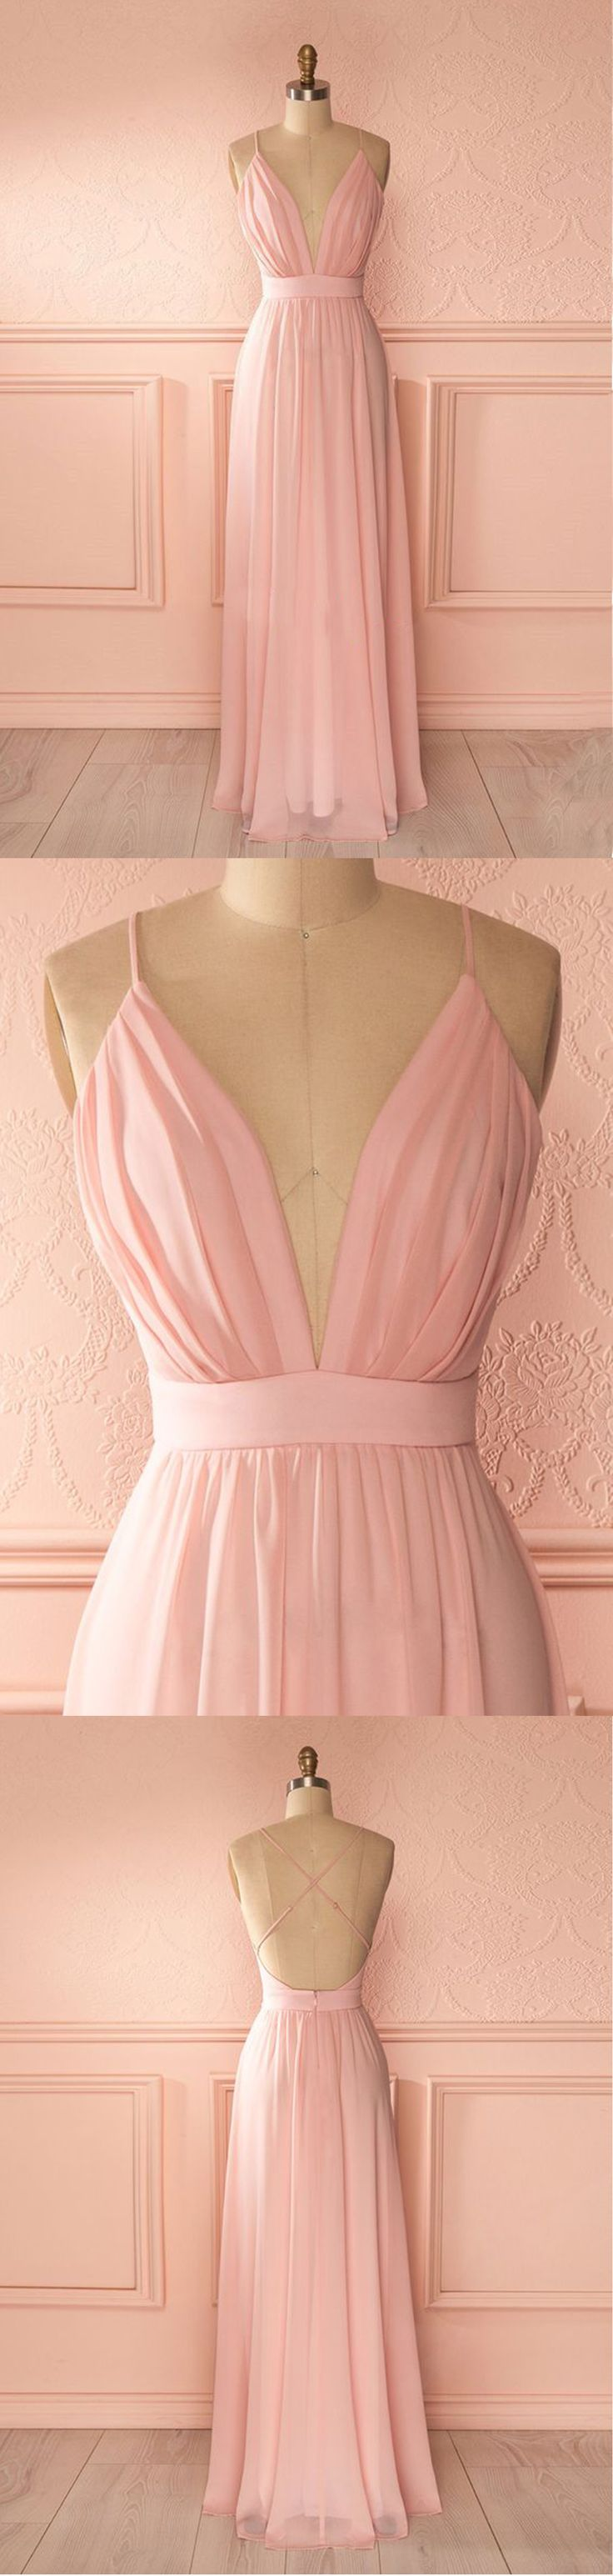 Chiffon Dresses | Cute pink long  dress with straps #dress